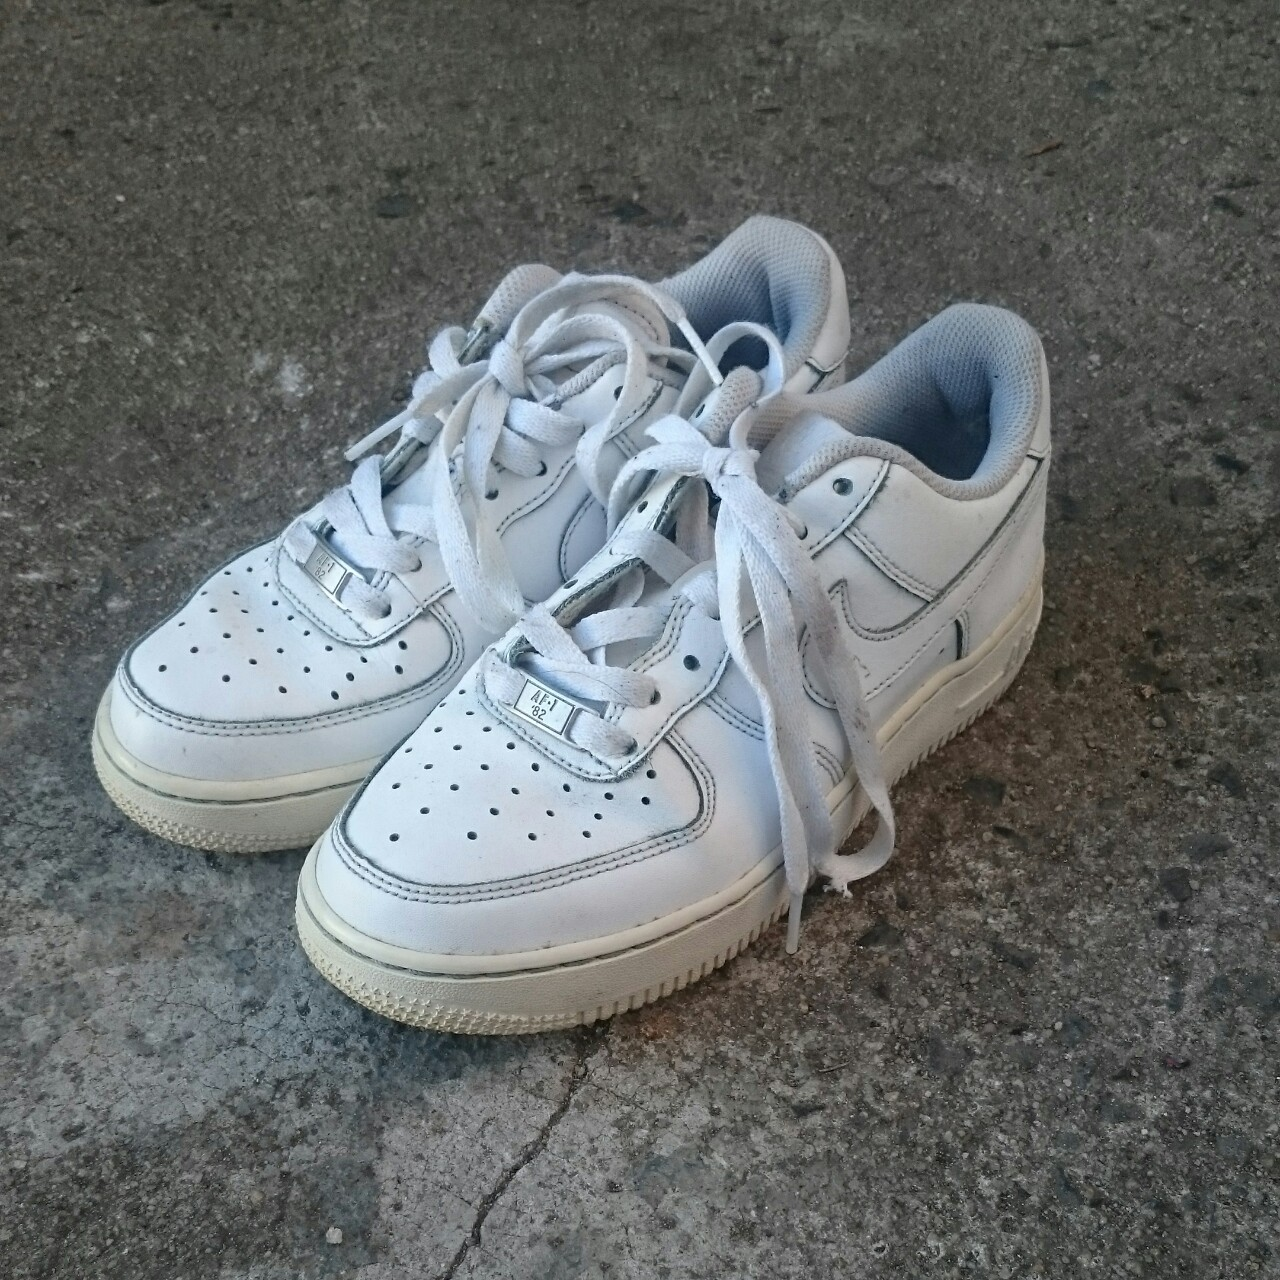 air force 1s low top white